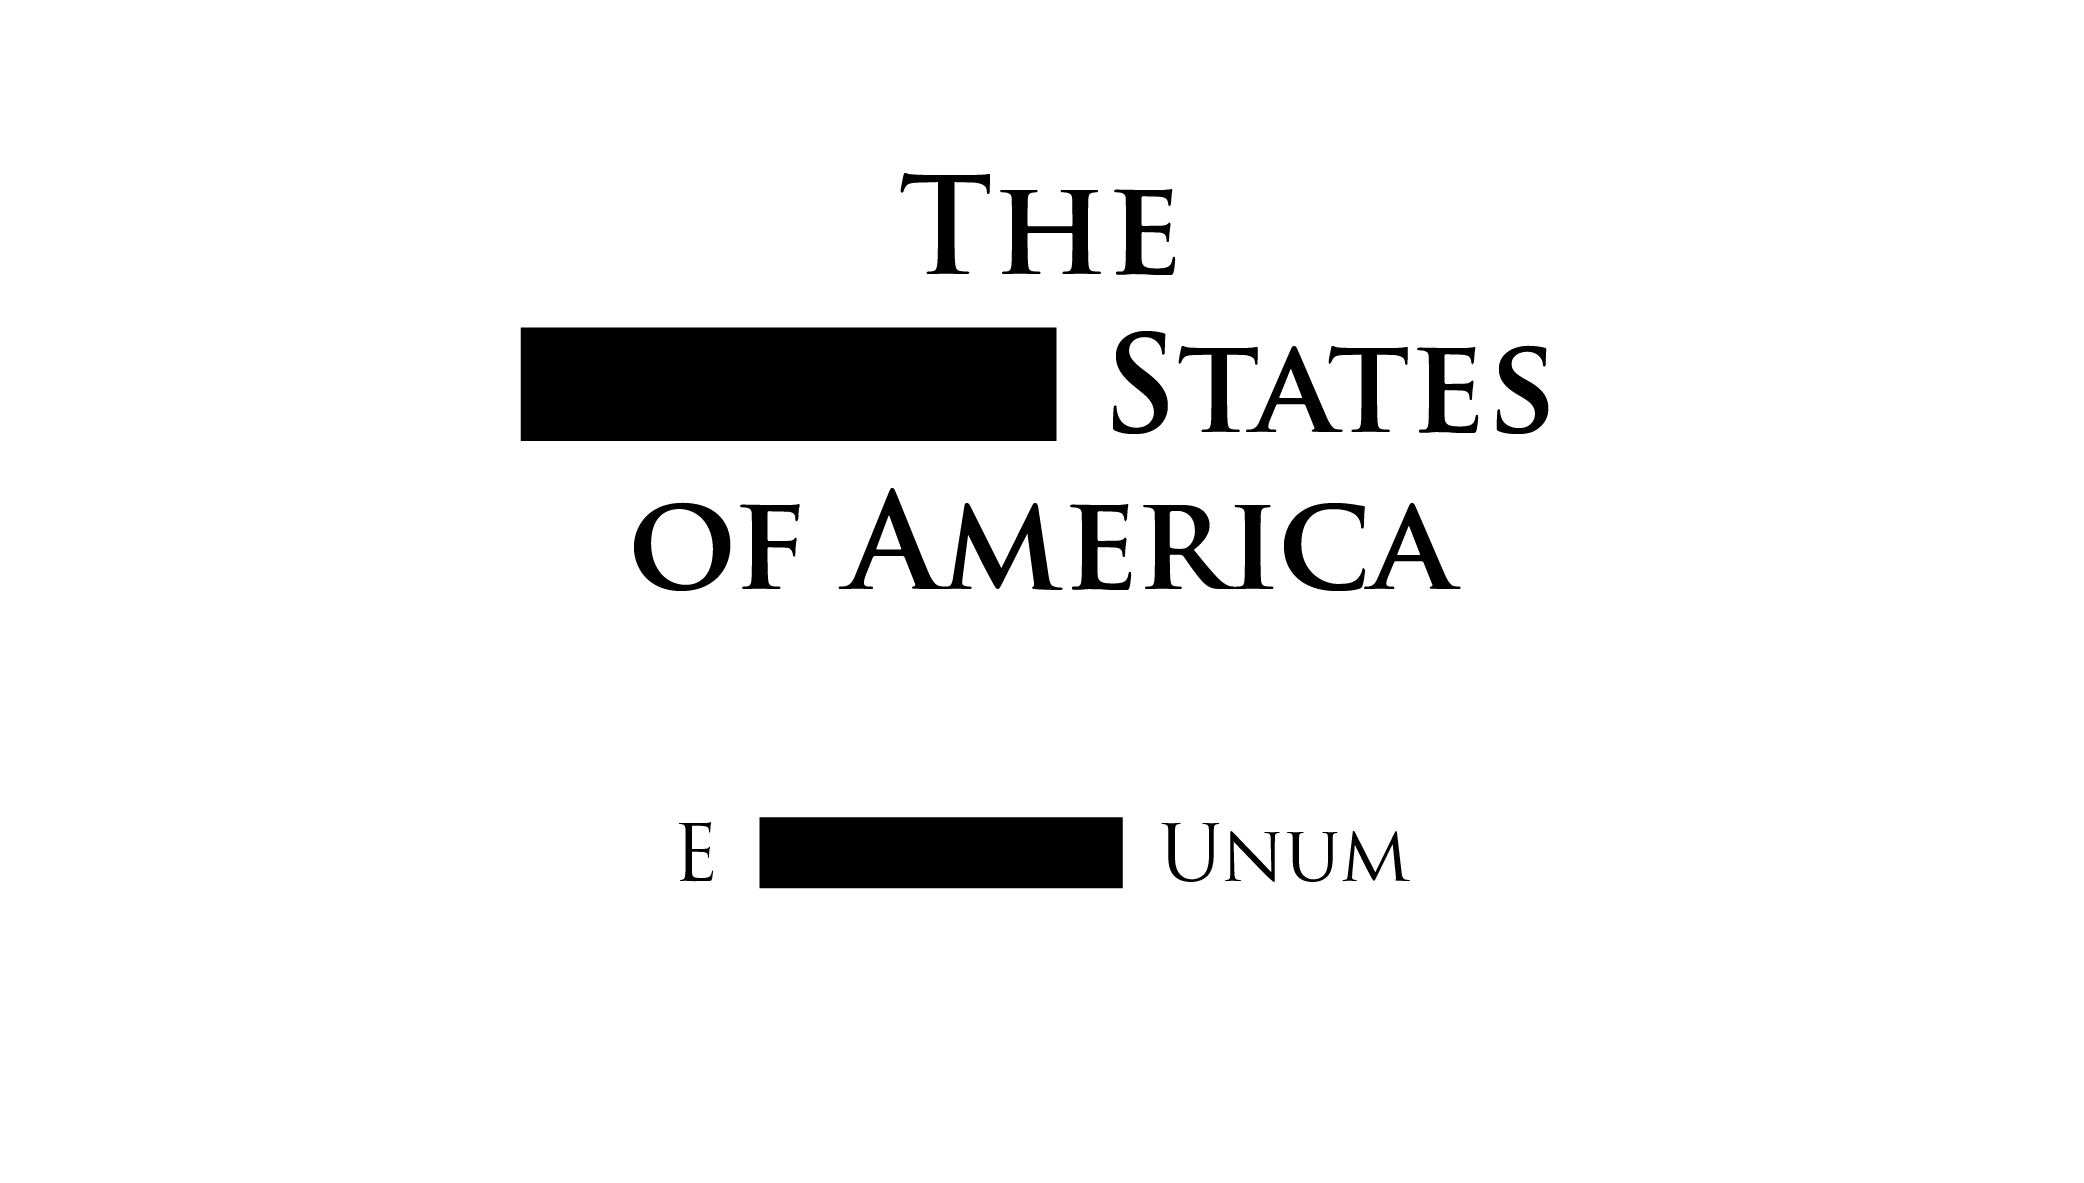 The [Censored] States of America